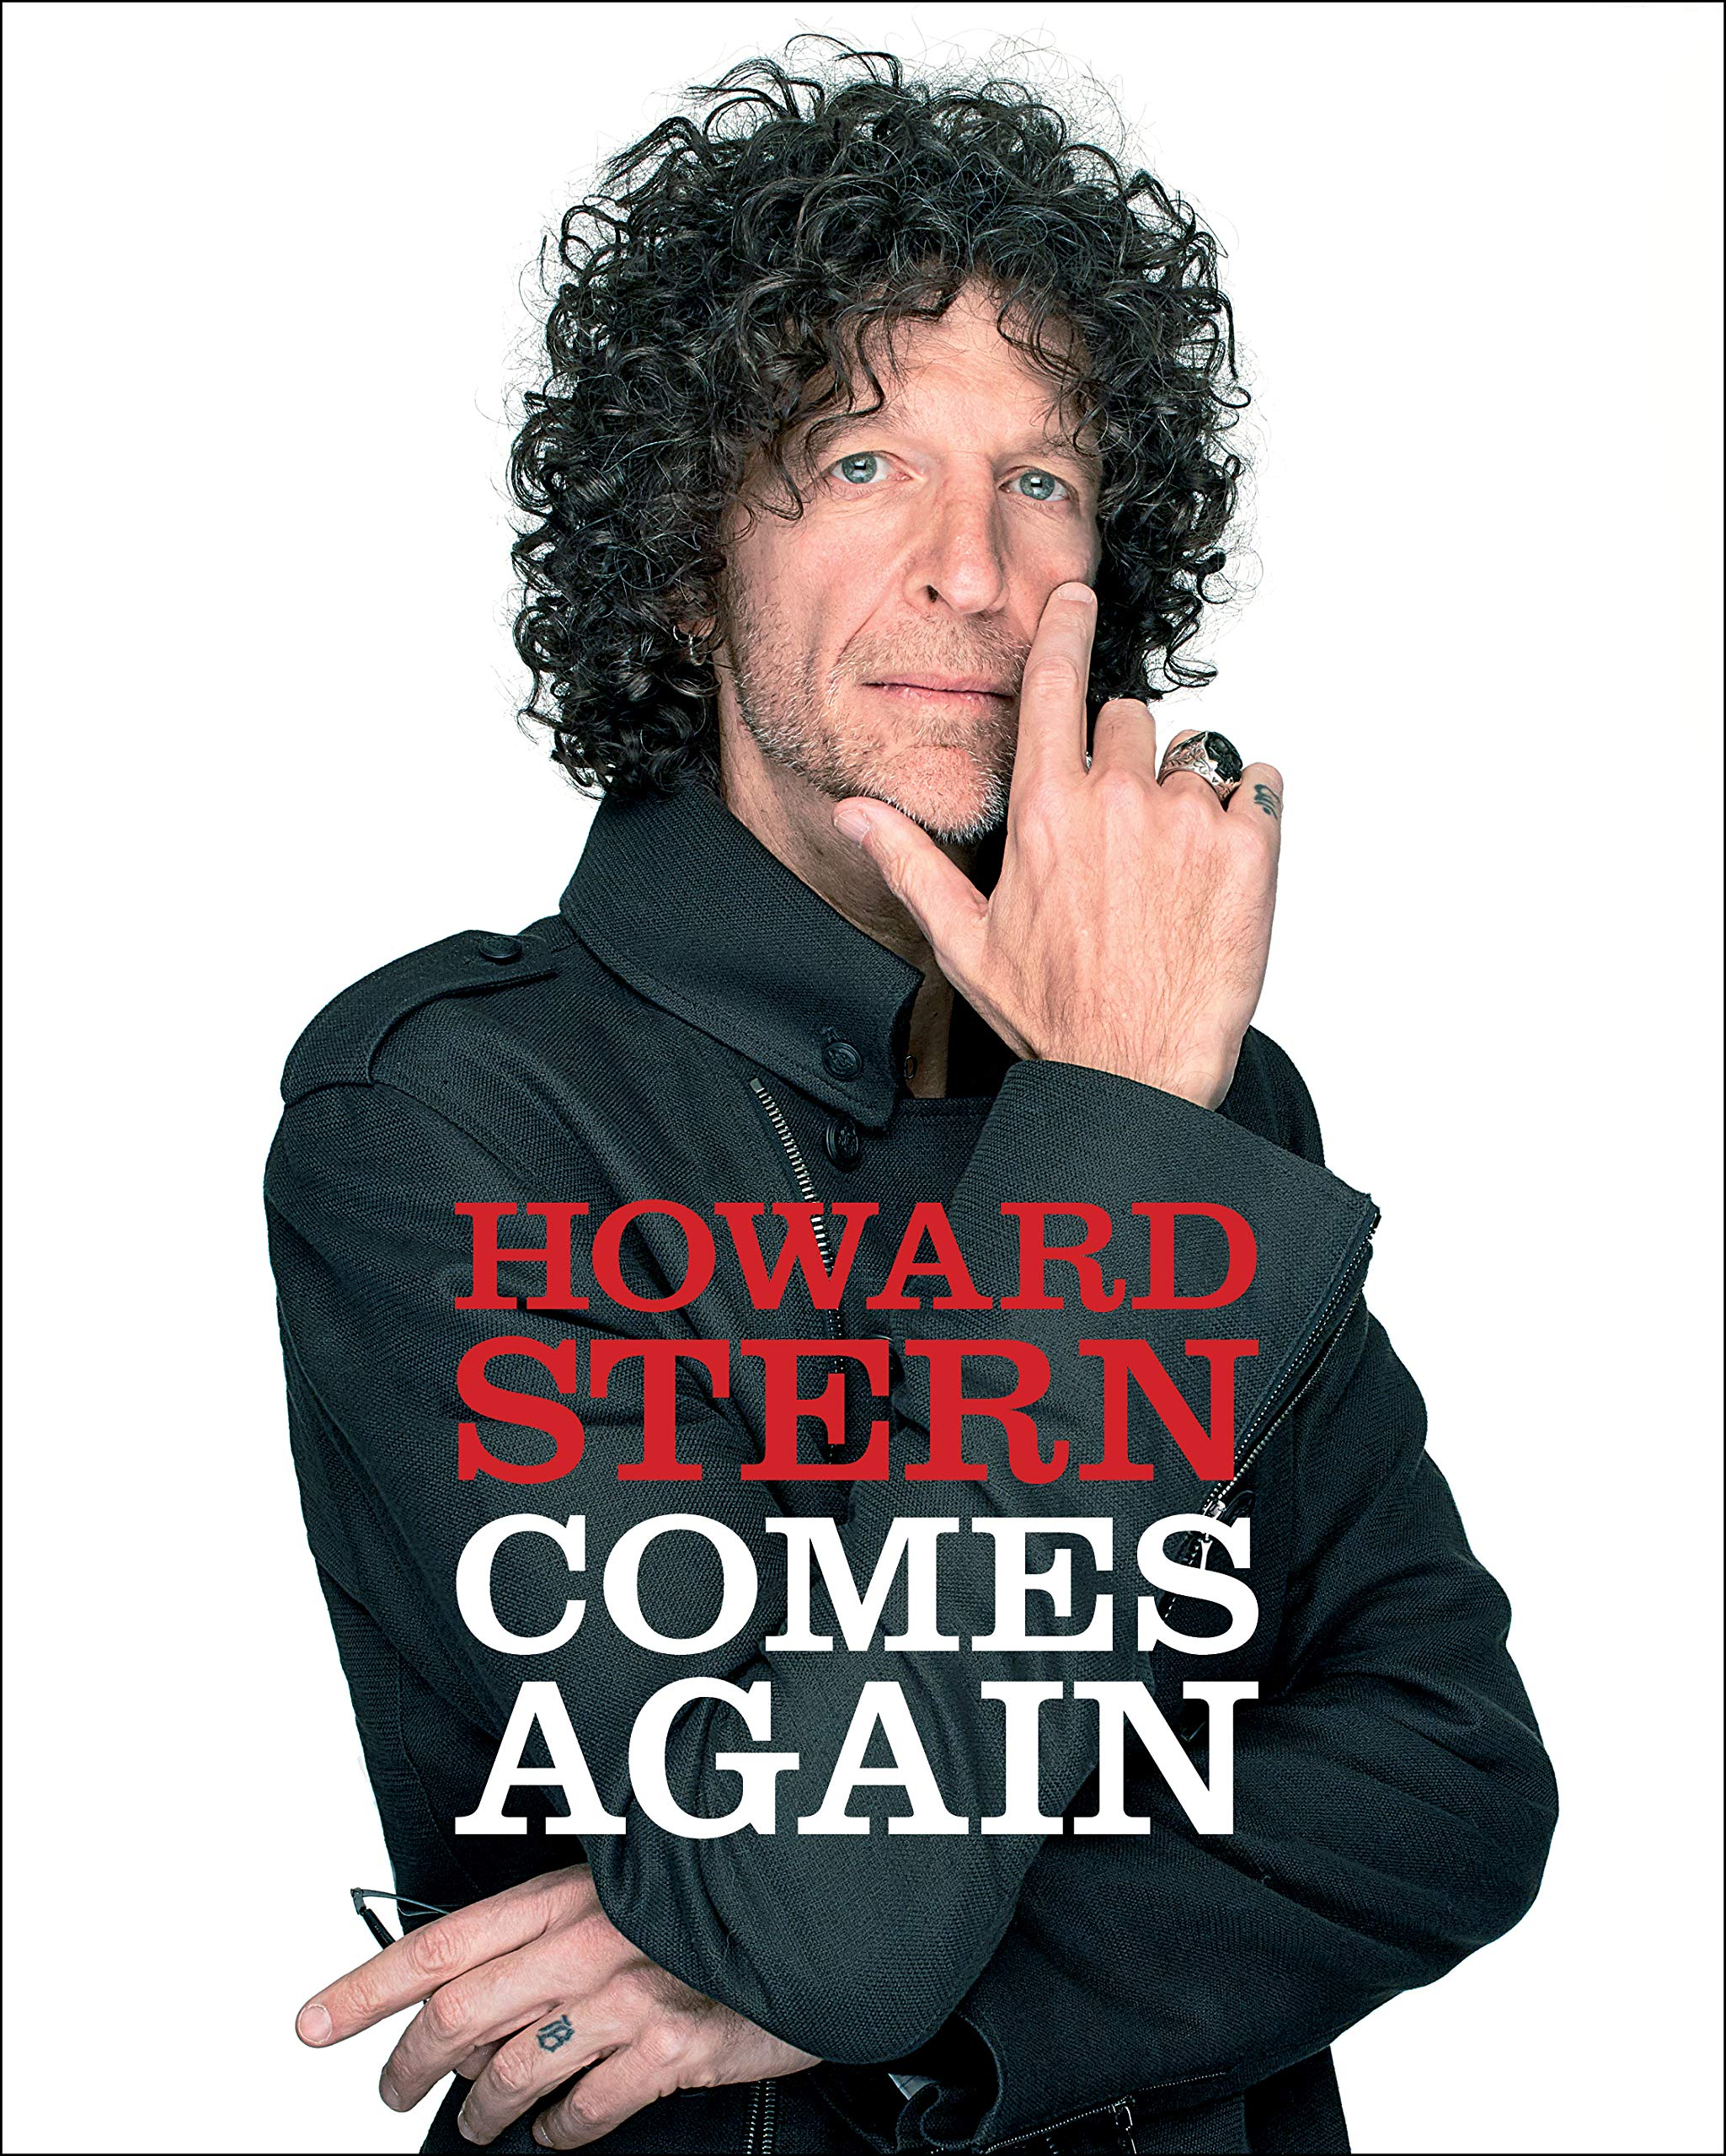 Buy Howard Stern Comes Now!